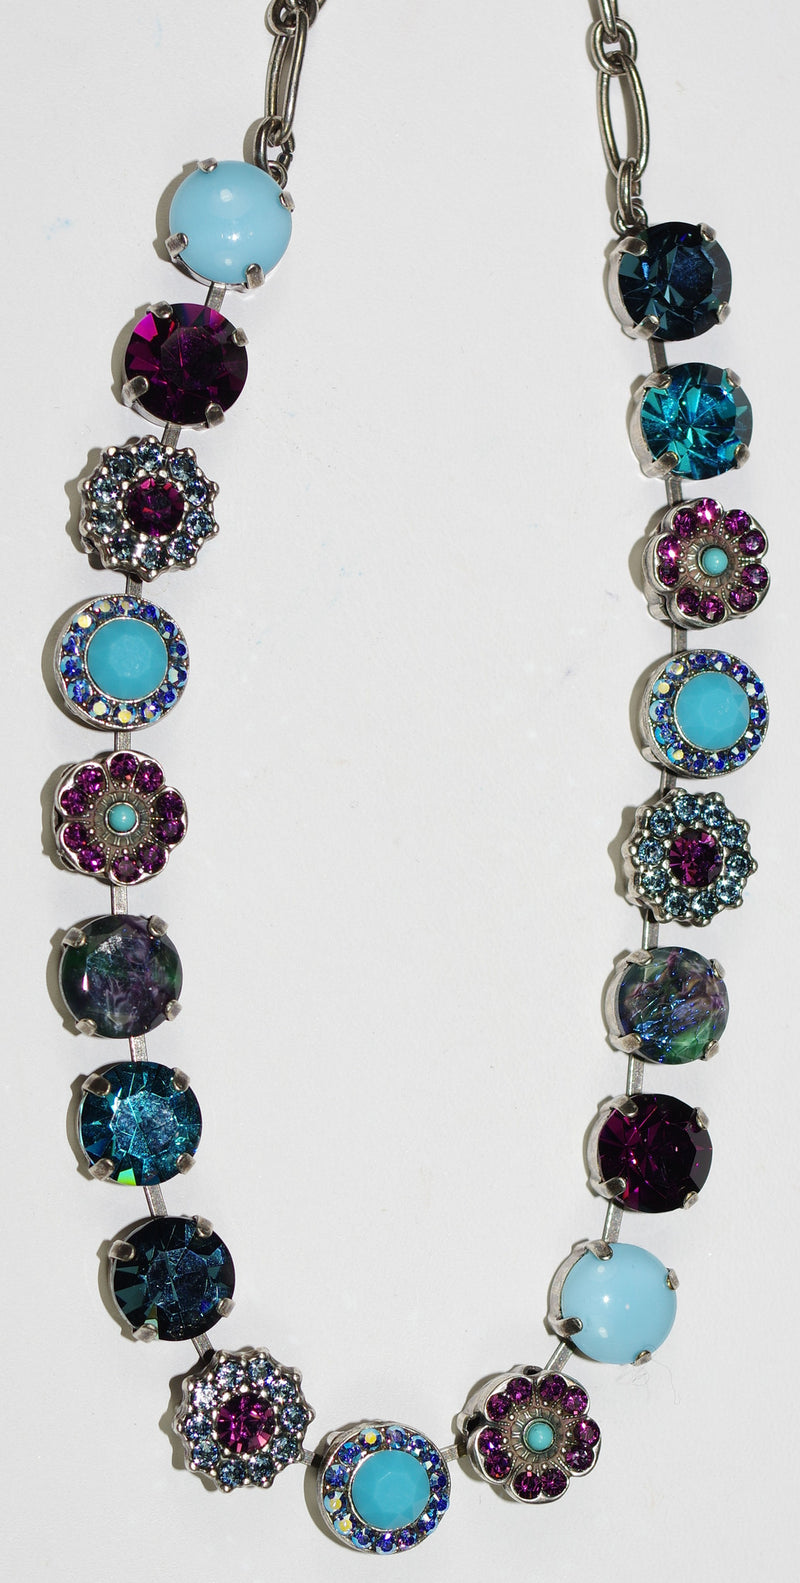 "MARIANA NECKLACE INSPIRE SOPHIA: blue, a/b, purple stones in silver setting, 17"" adjustable chain"